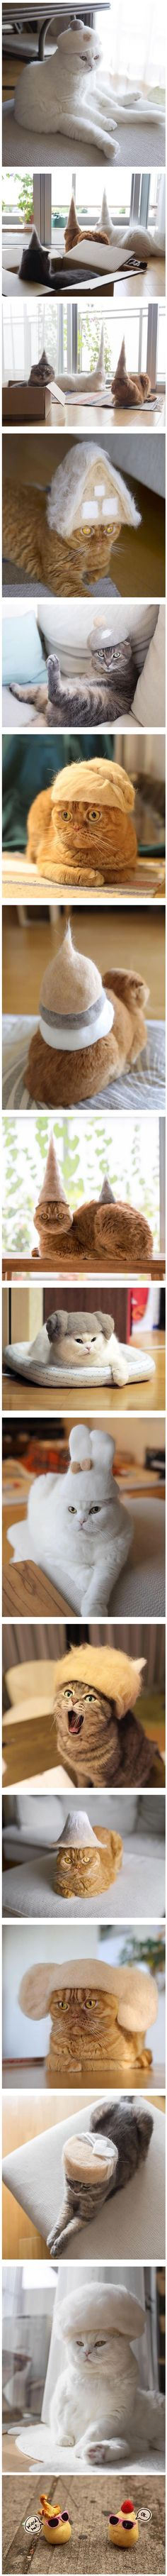 Photographer Makes Hats For His Cats Using Their Own Fluff - 9GAG and like OMG! get some yourself some pawtastic adorable cat apparel!